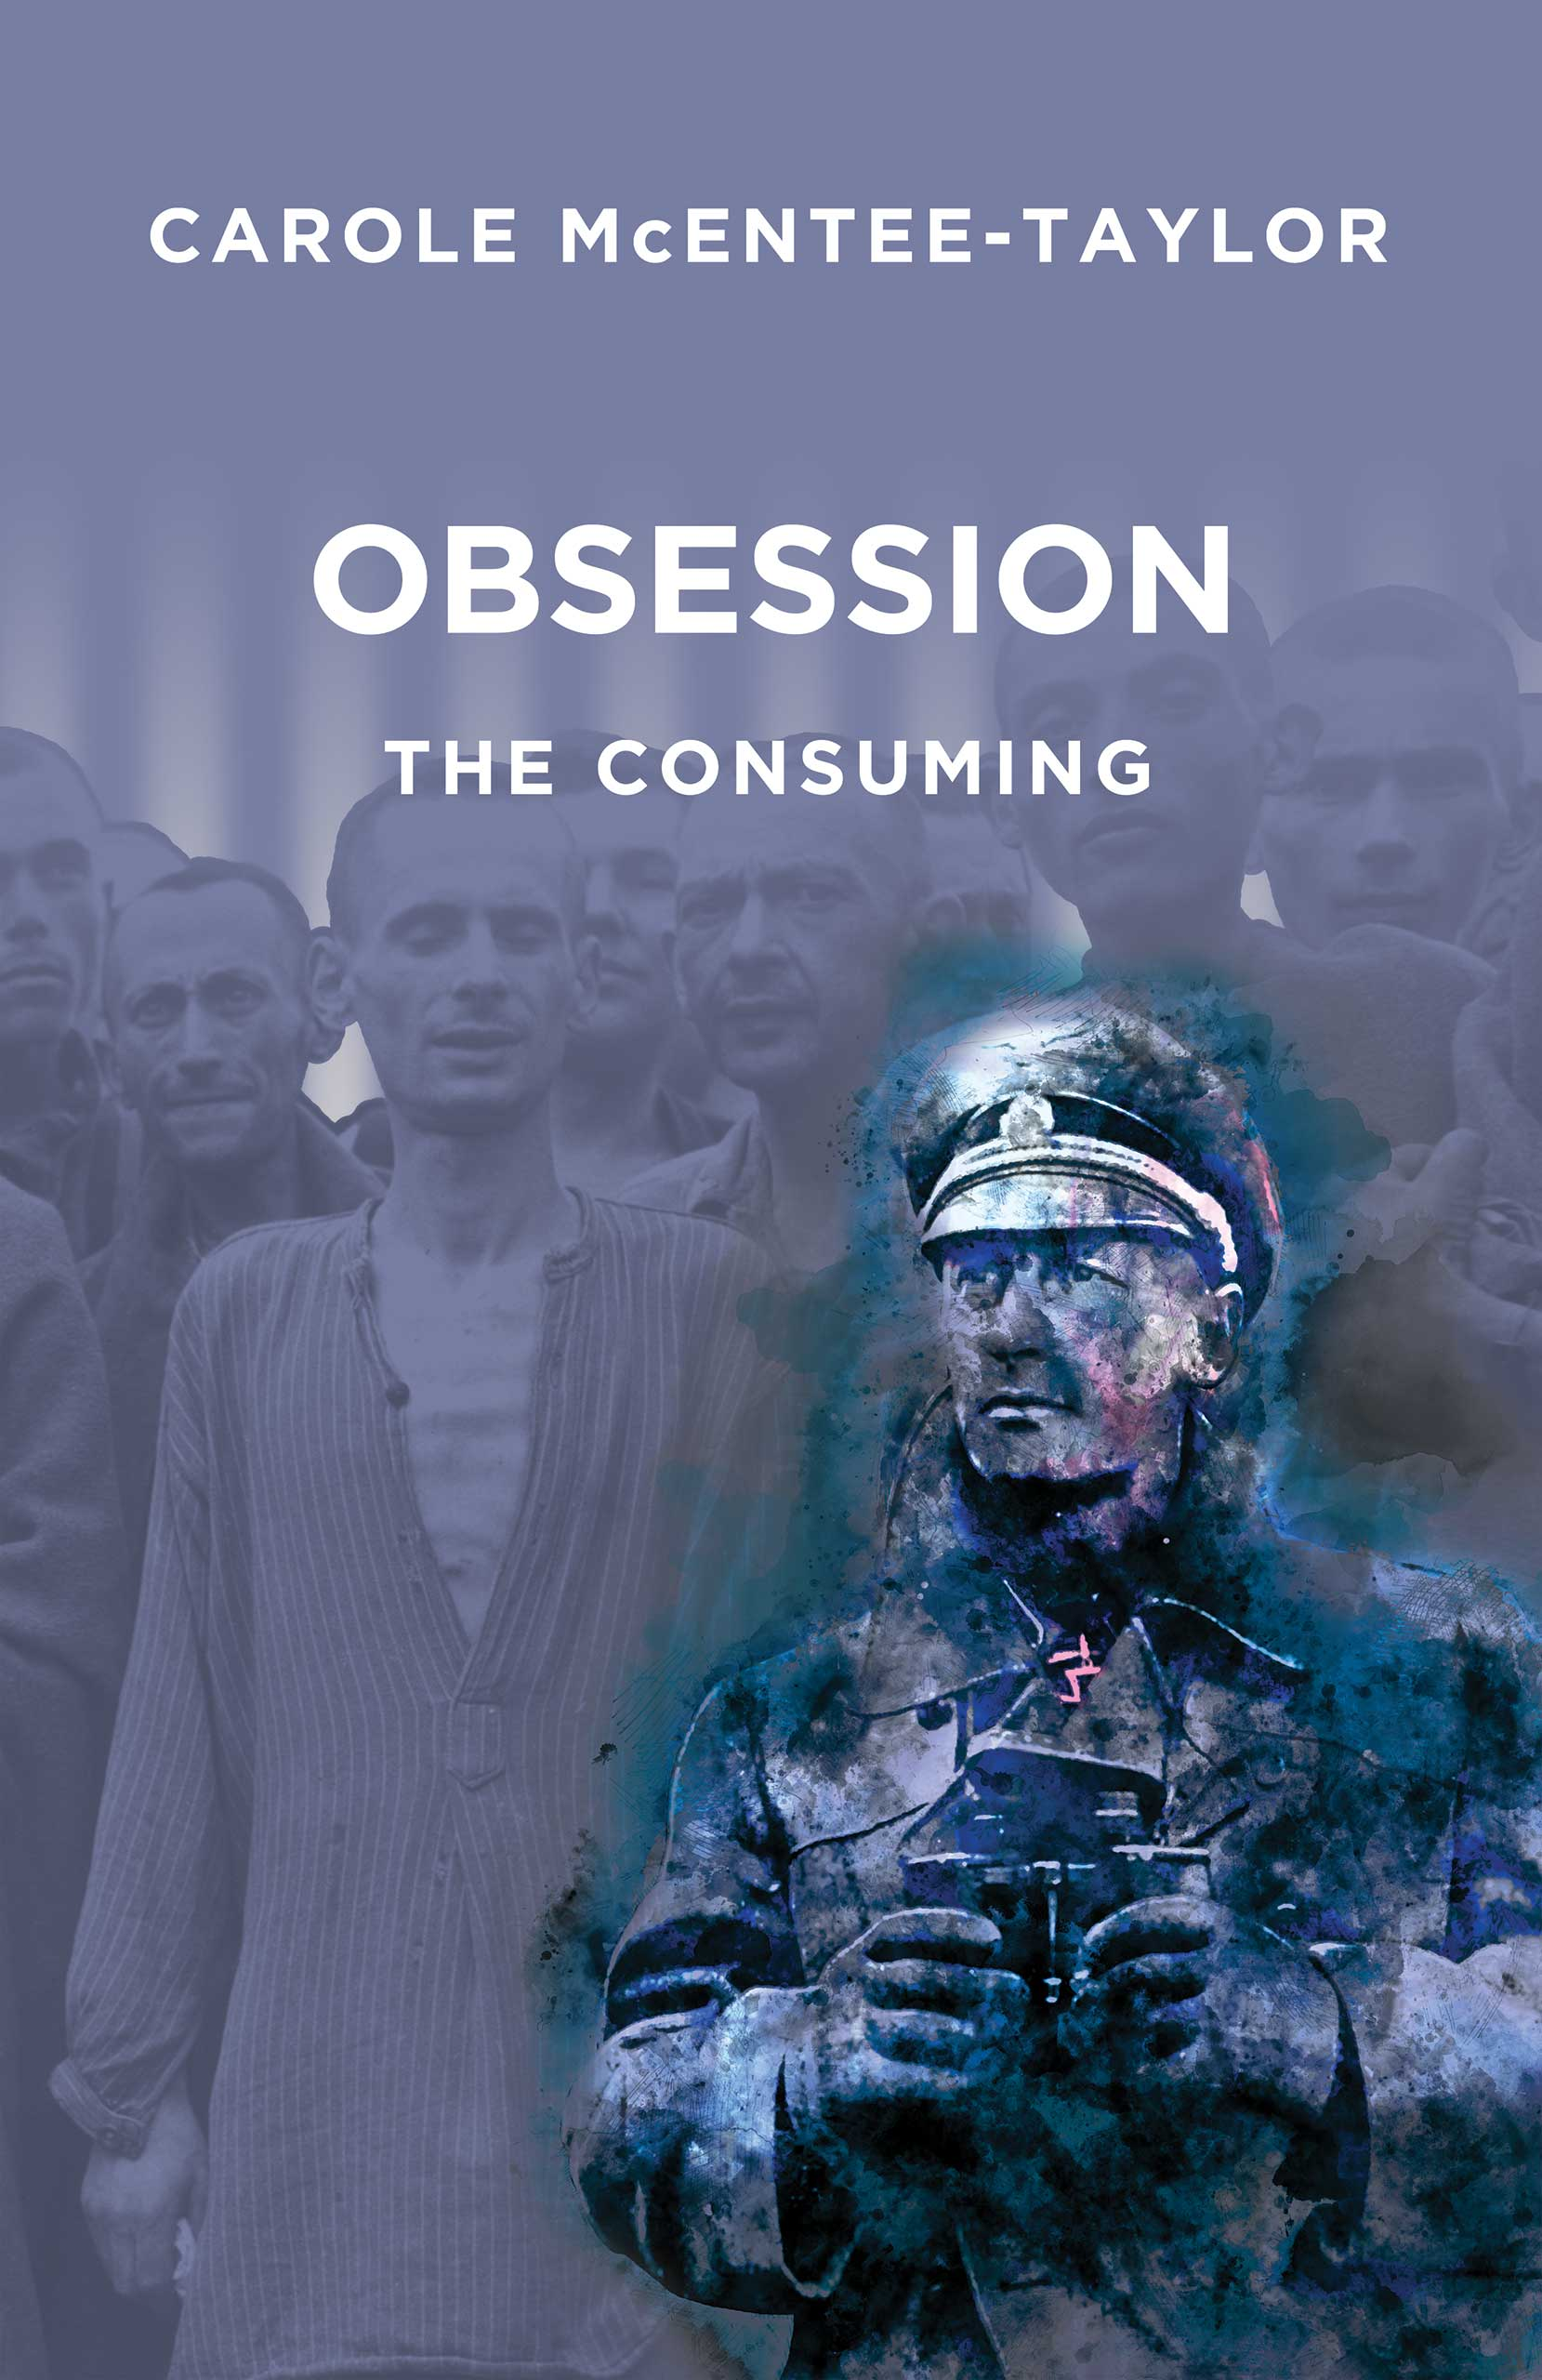 Obsession: The Consuming